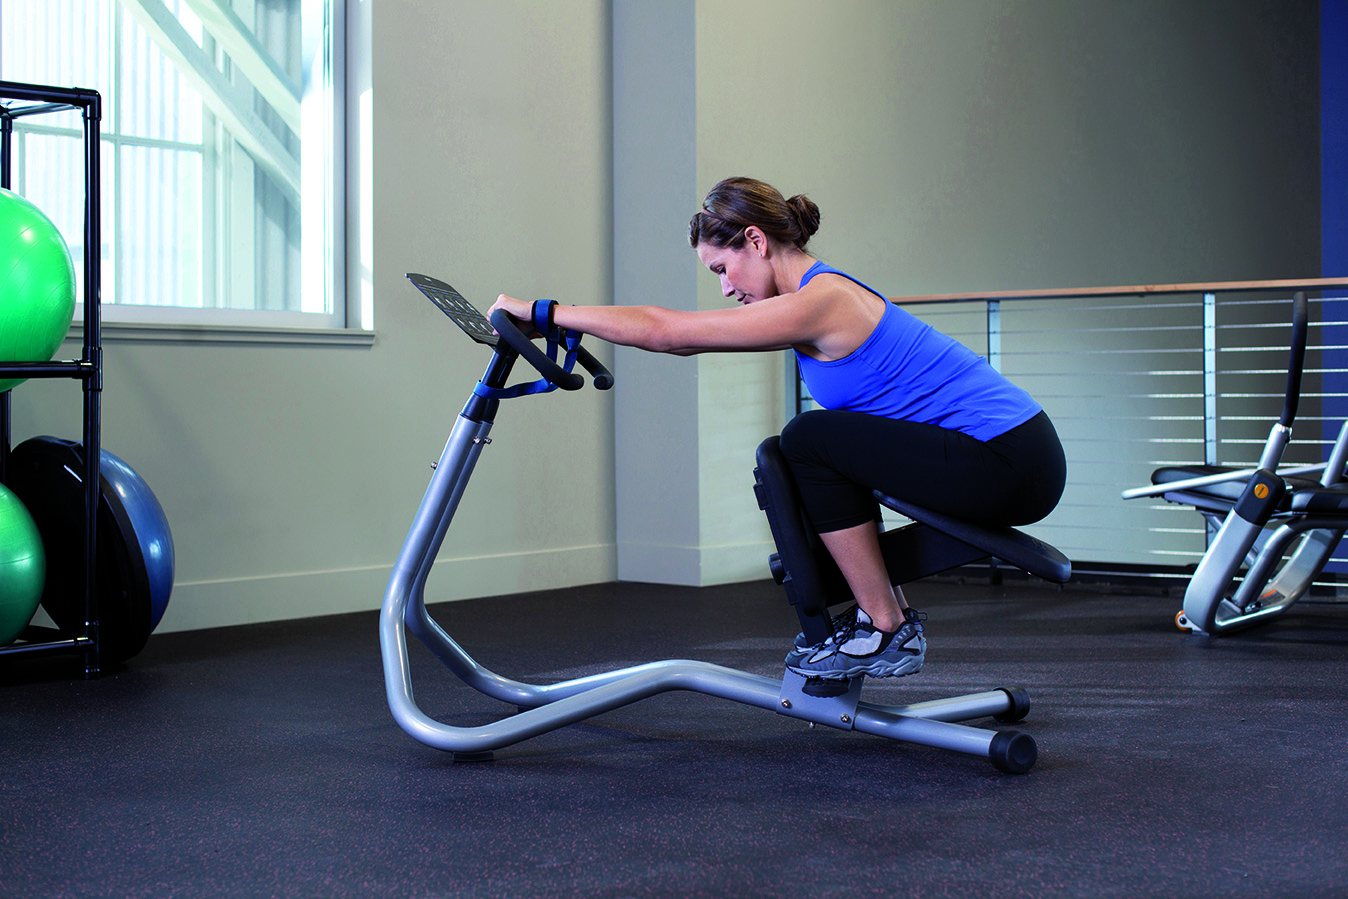 Female in a professional gym using a Precor 240i StretchTrainer